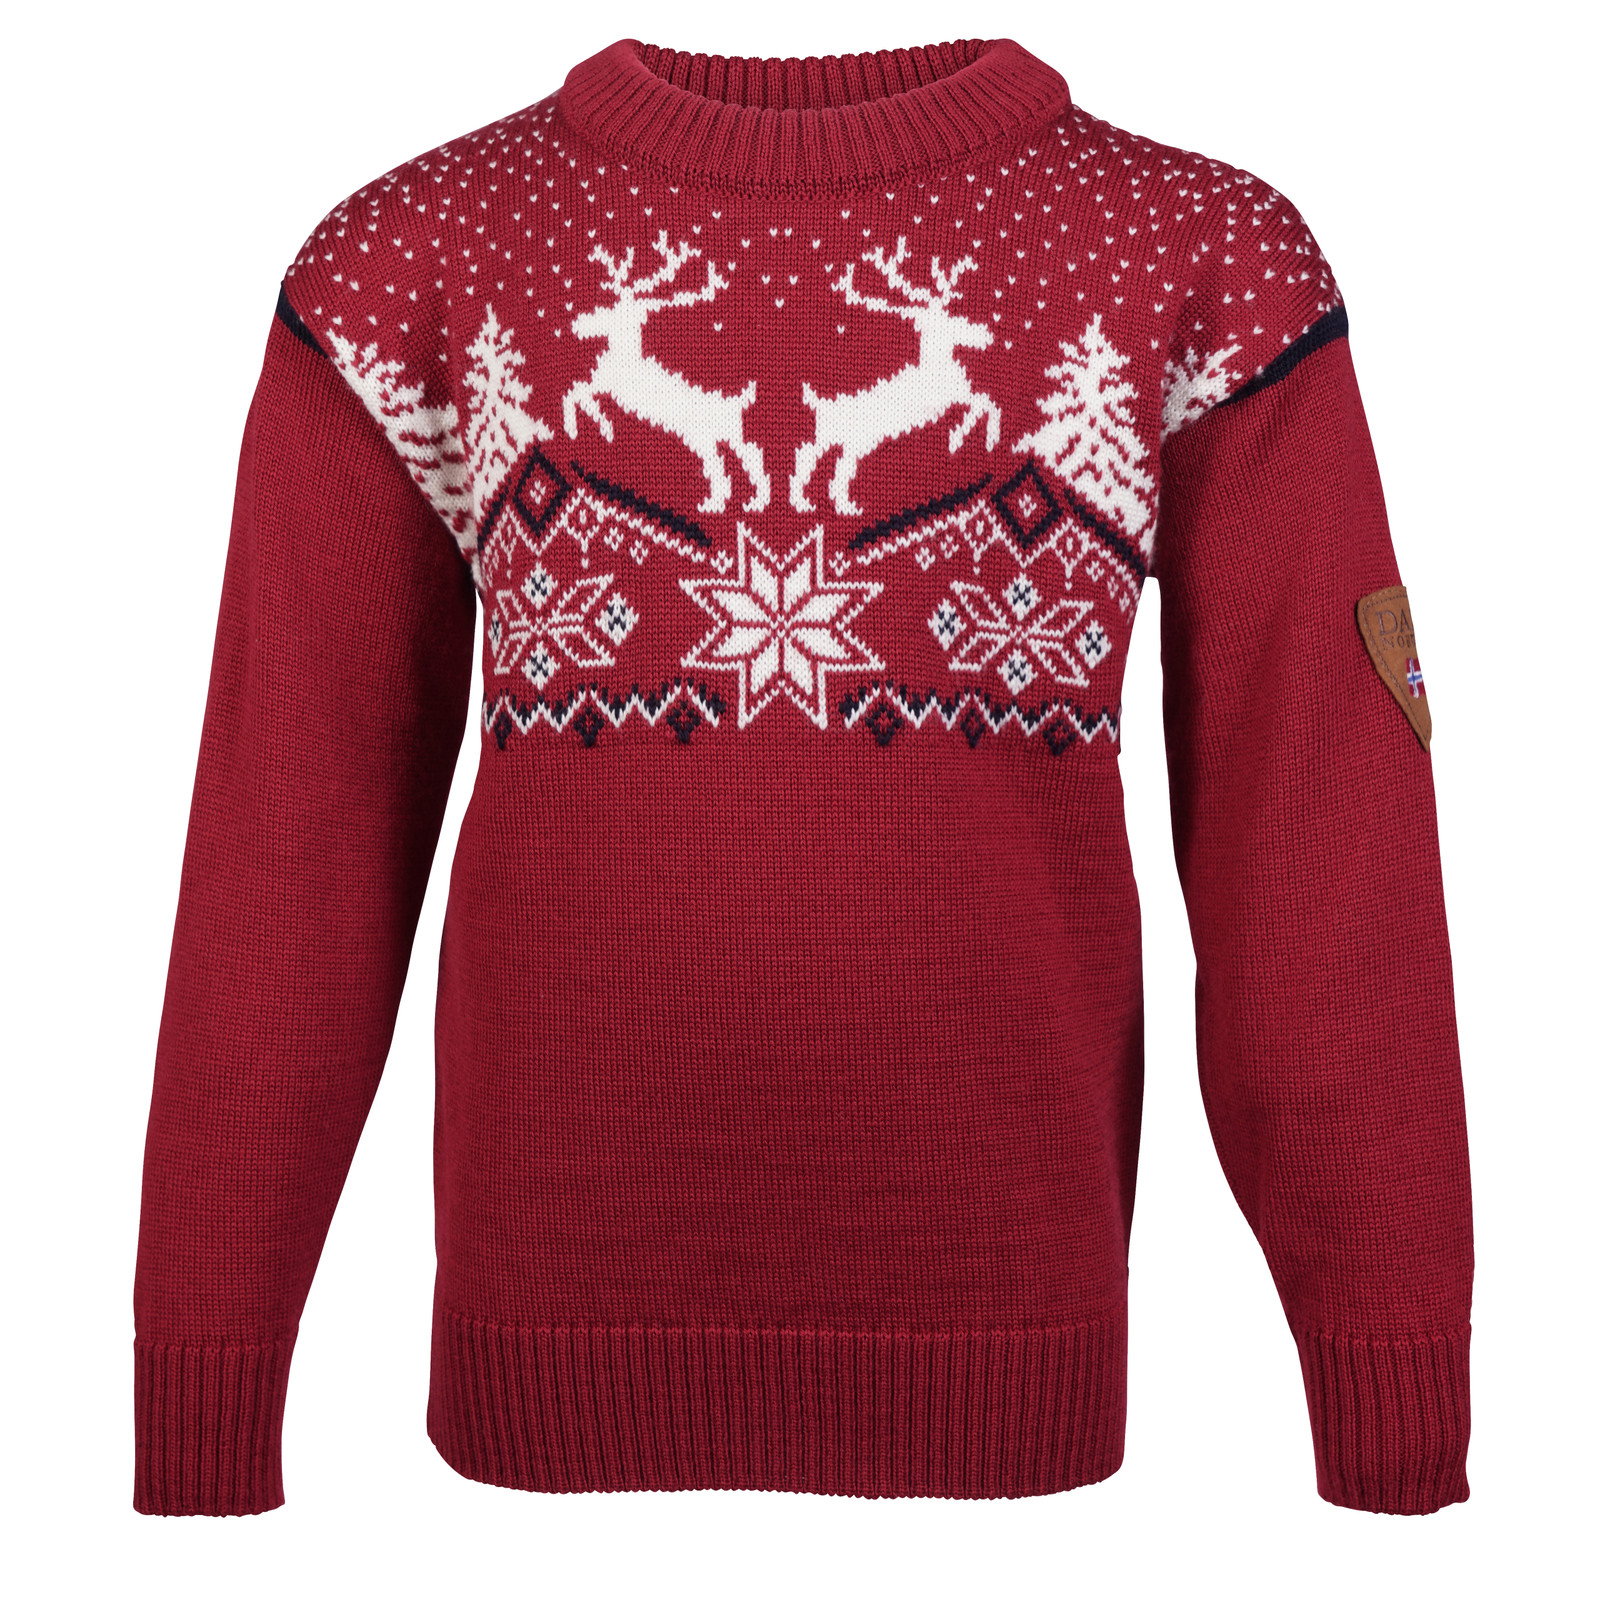 Dale of Norway Dale Christmas Sweater, Childrens - Red Rose/Off White/Navy, 93941-B